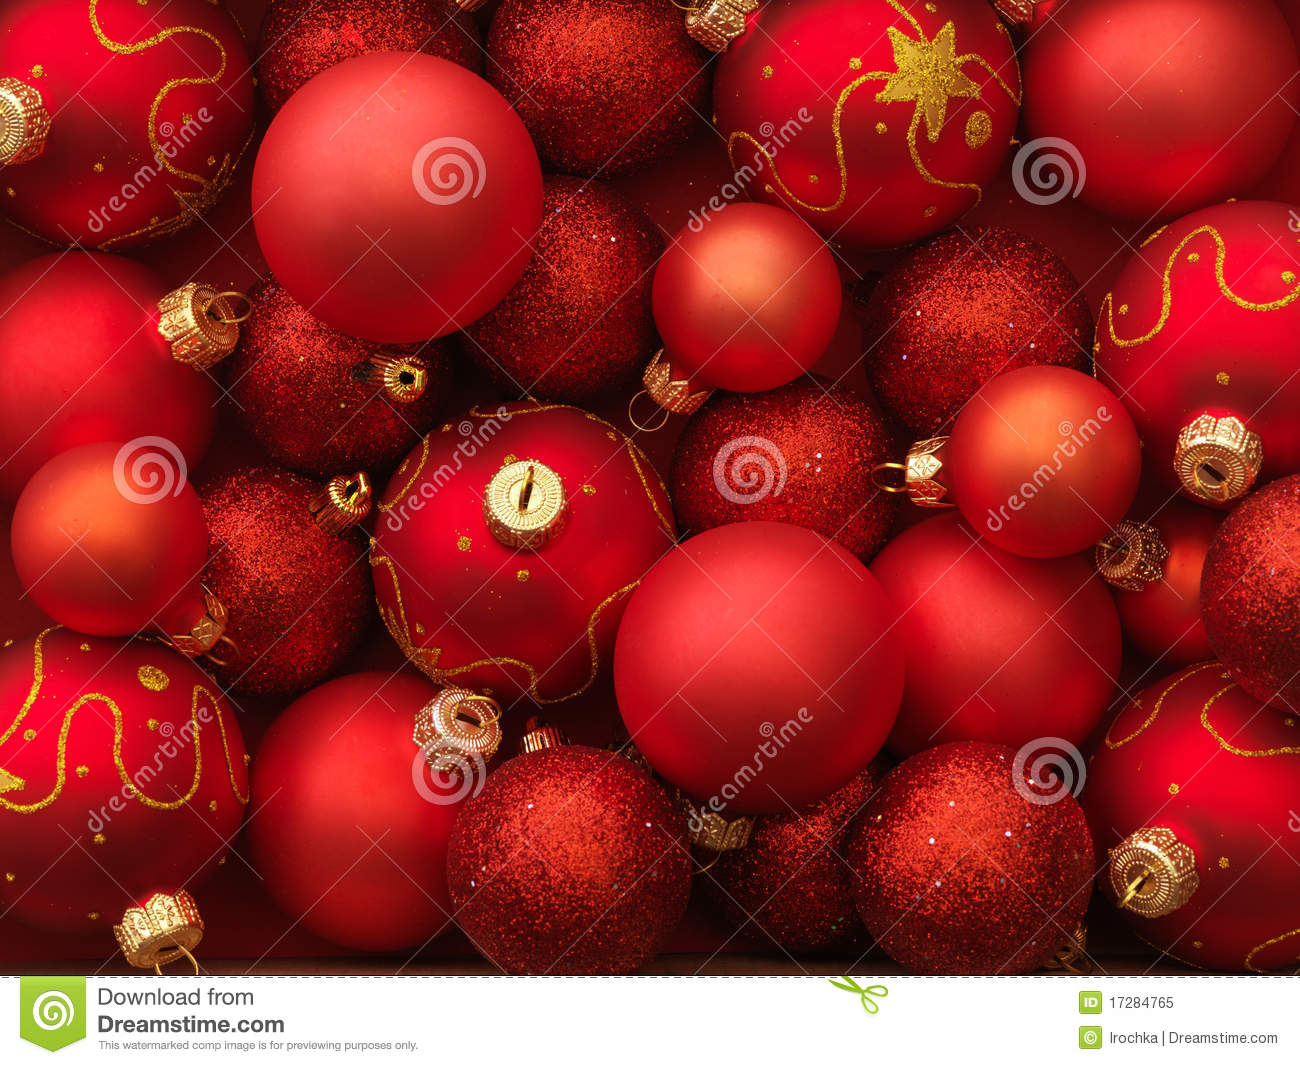 Christmas Ornaments Red And Gold : Red and gold holiday ornaments royalty free stock photo